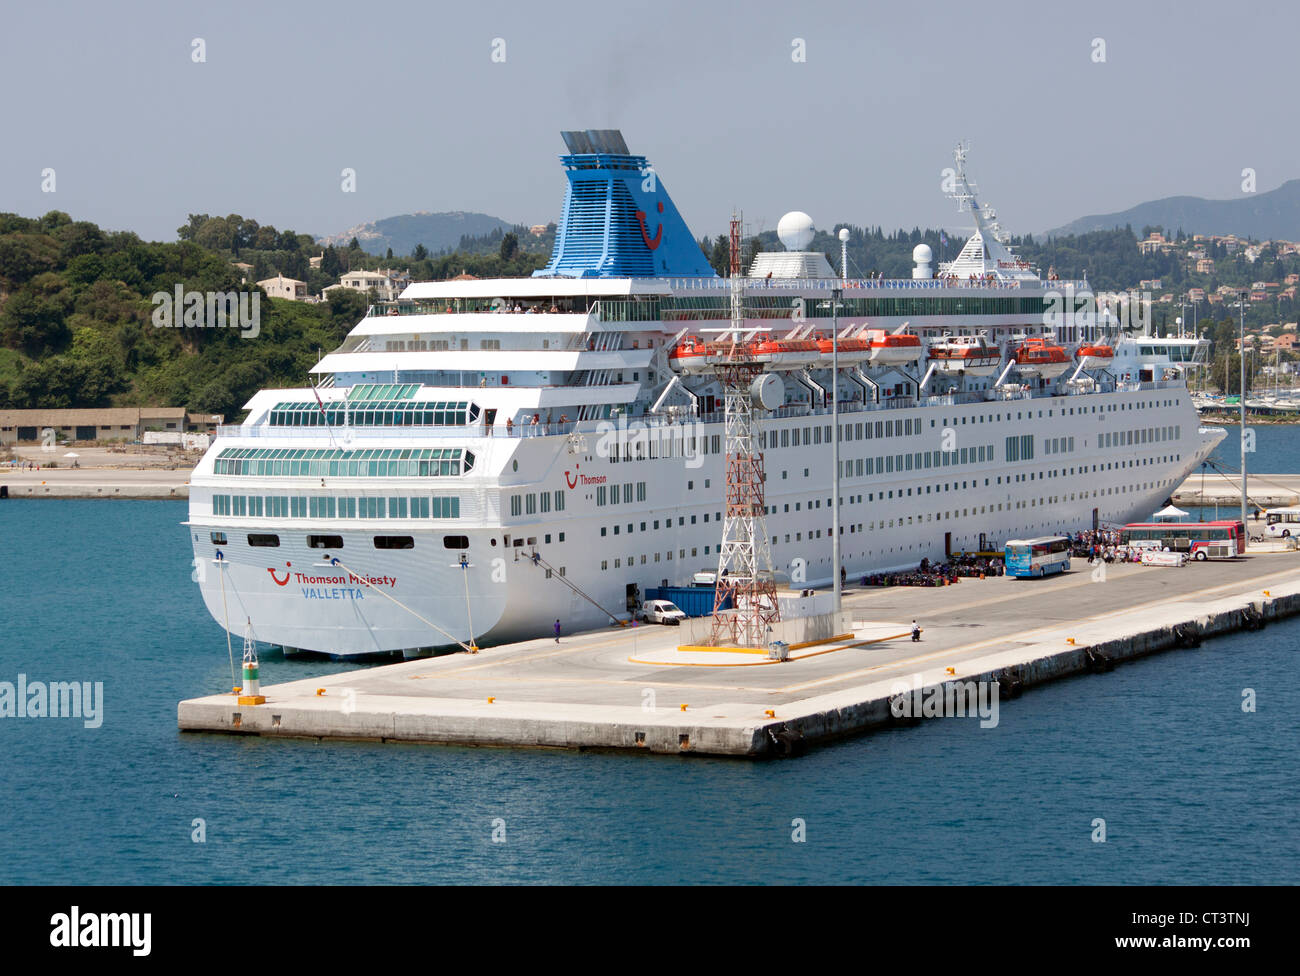 Corfu Port High Resolution Stock Photography and Images - Alamy